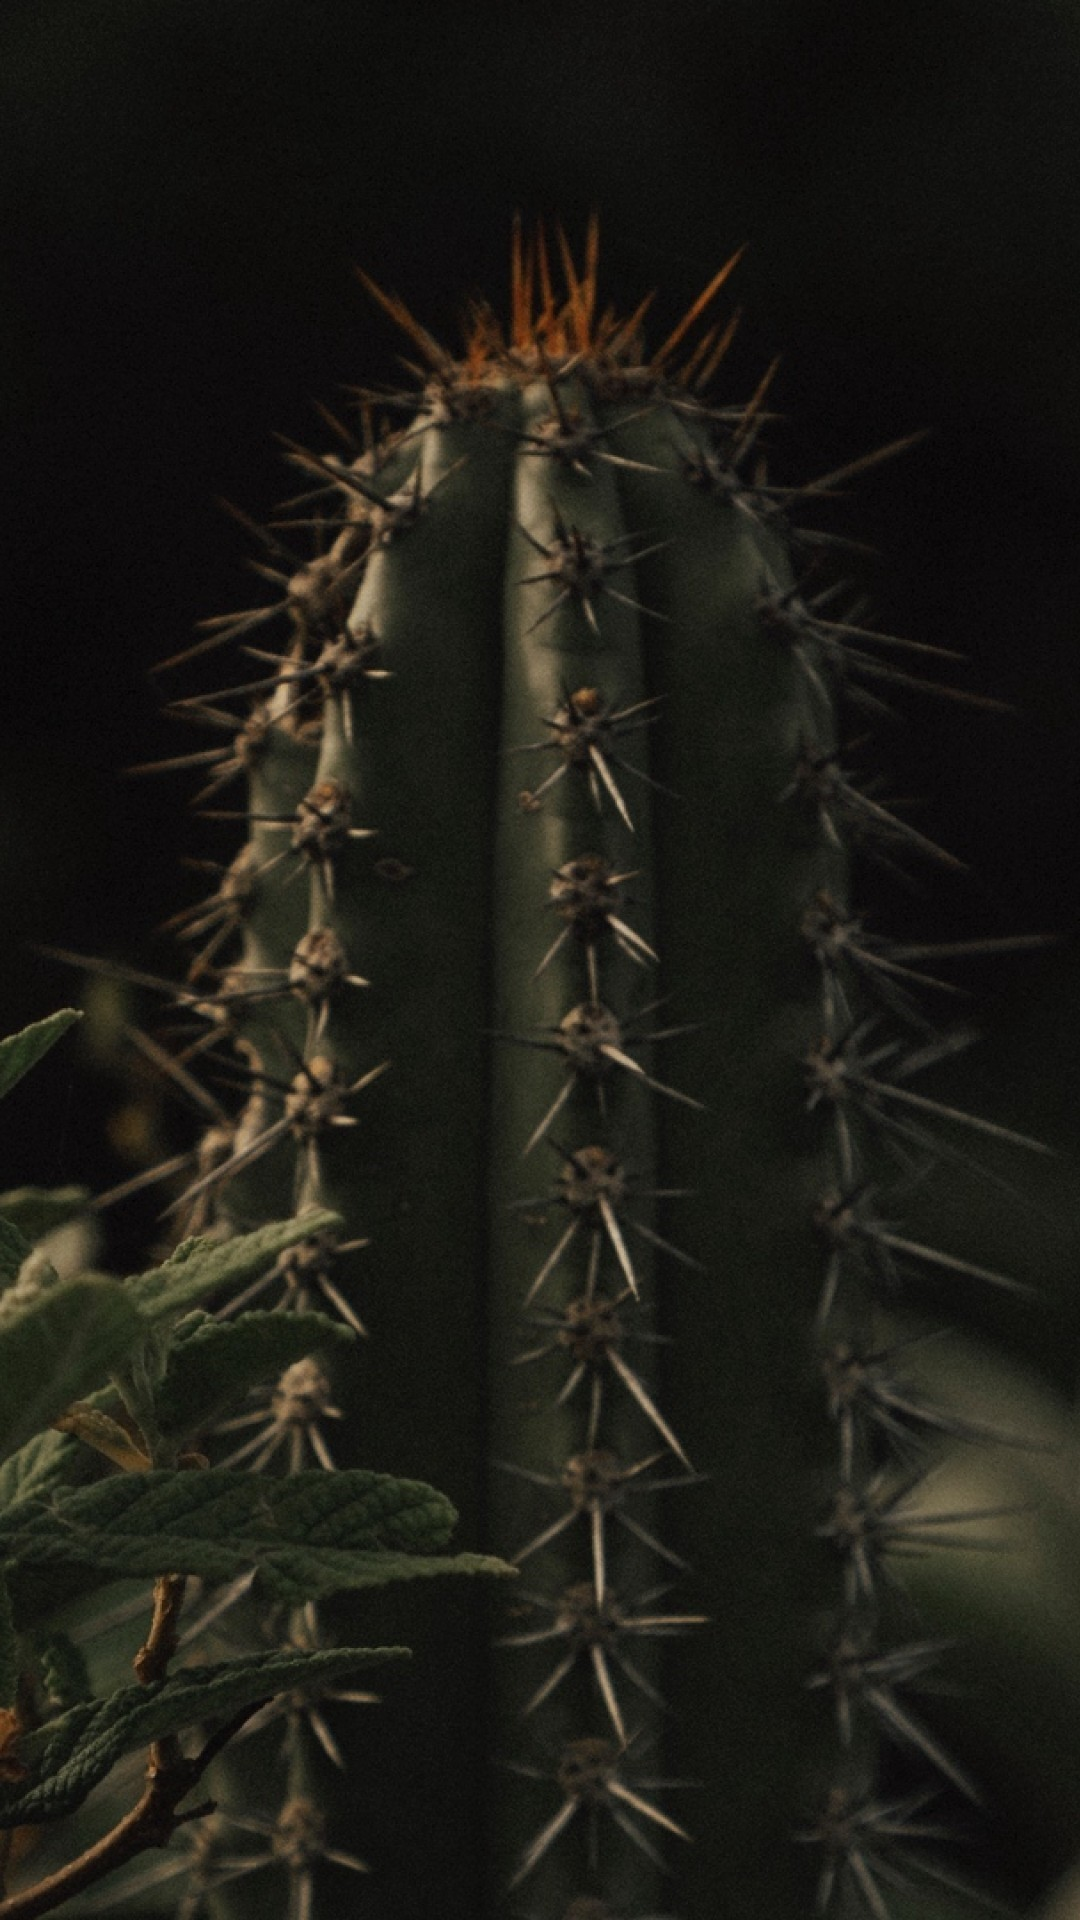 Cactus wallpaper for android